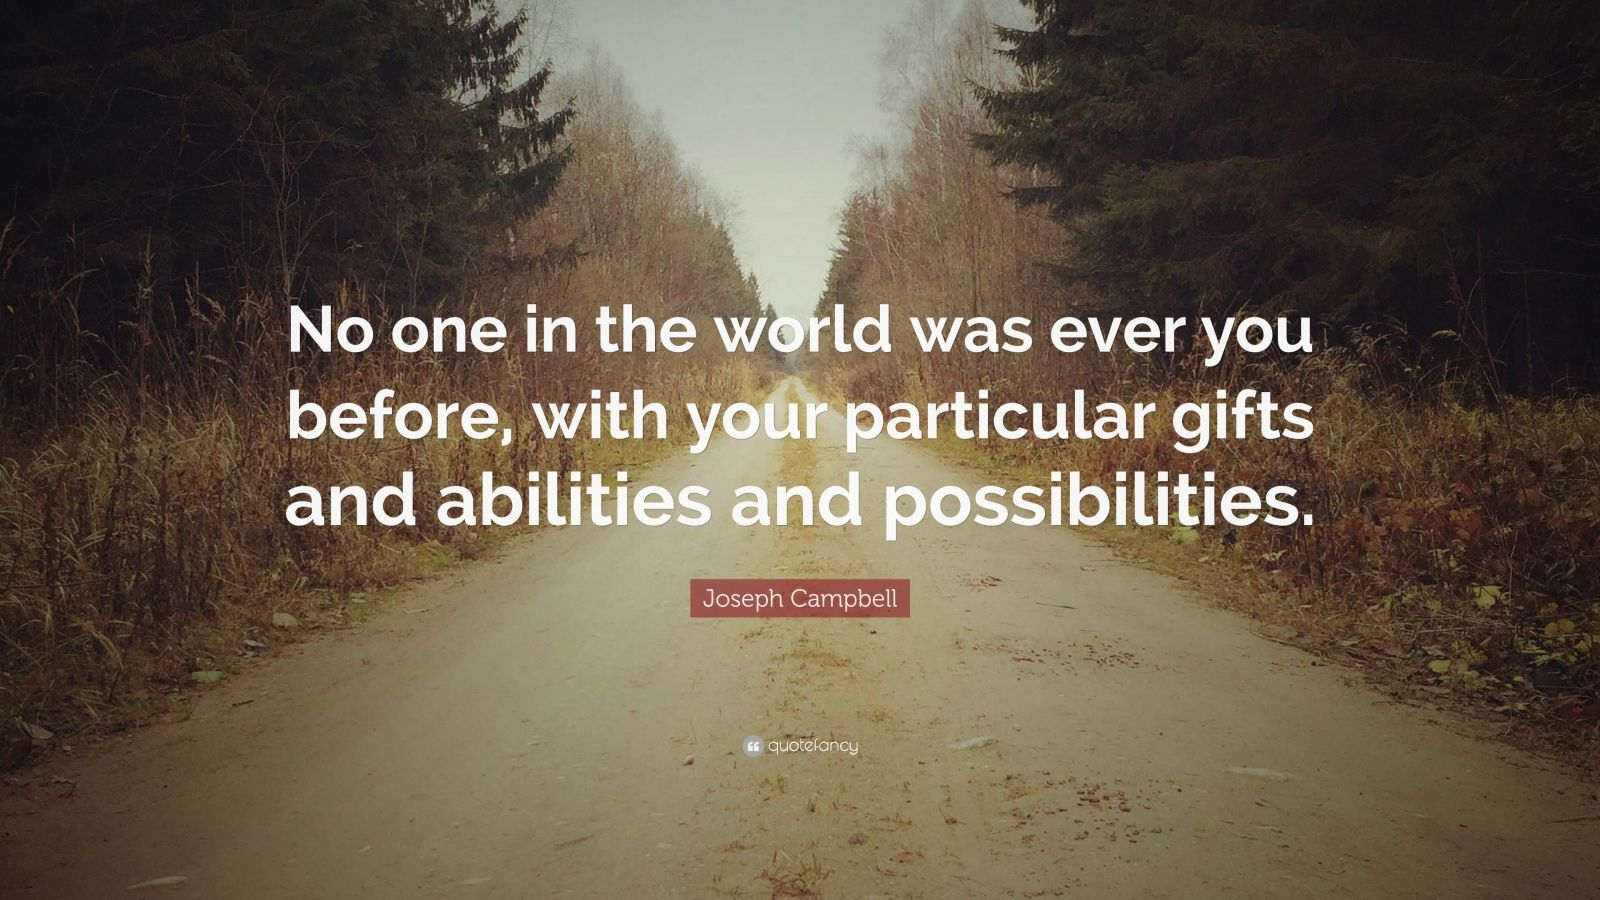 """Joseph Campbell Quote: """"No one in the world was ever you before, with your particular gifts and abilities and possibilities."""""""